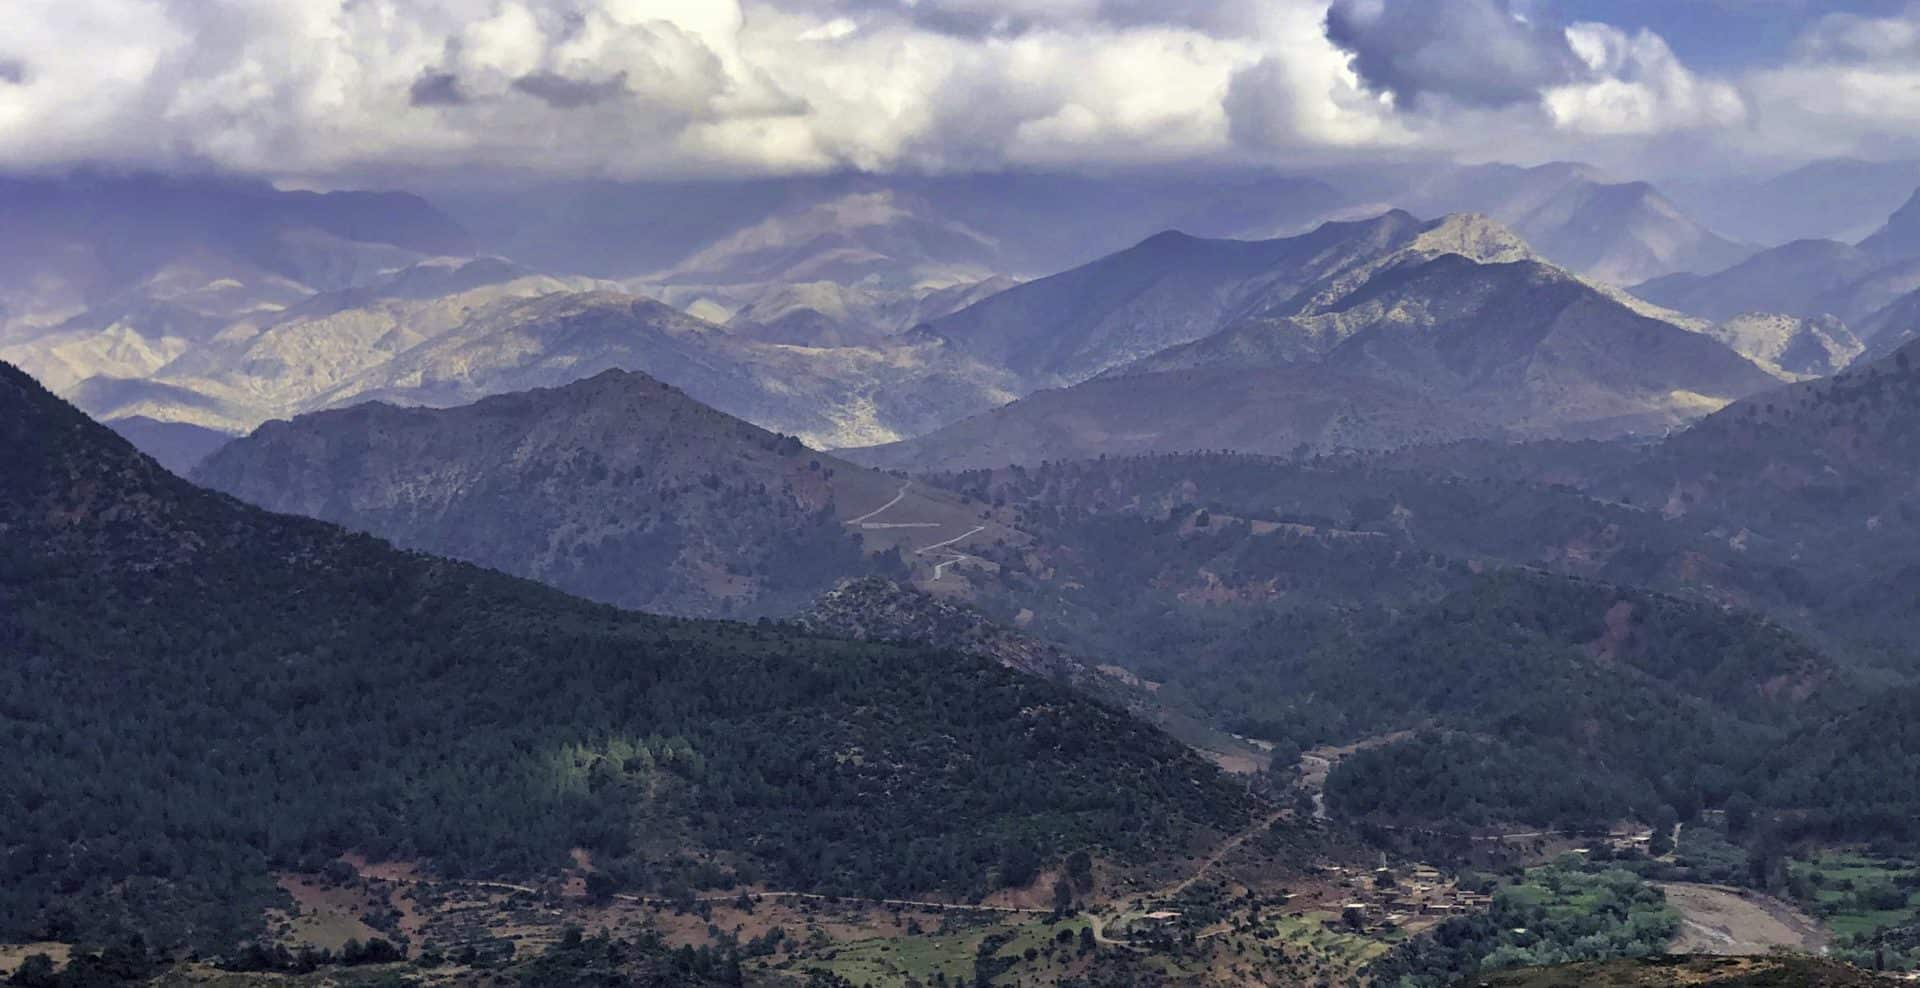 Morocco's Atlas Mountains aren't the world's tallest, but at least they're not more @#$%ing desert.